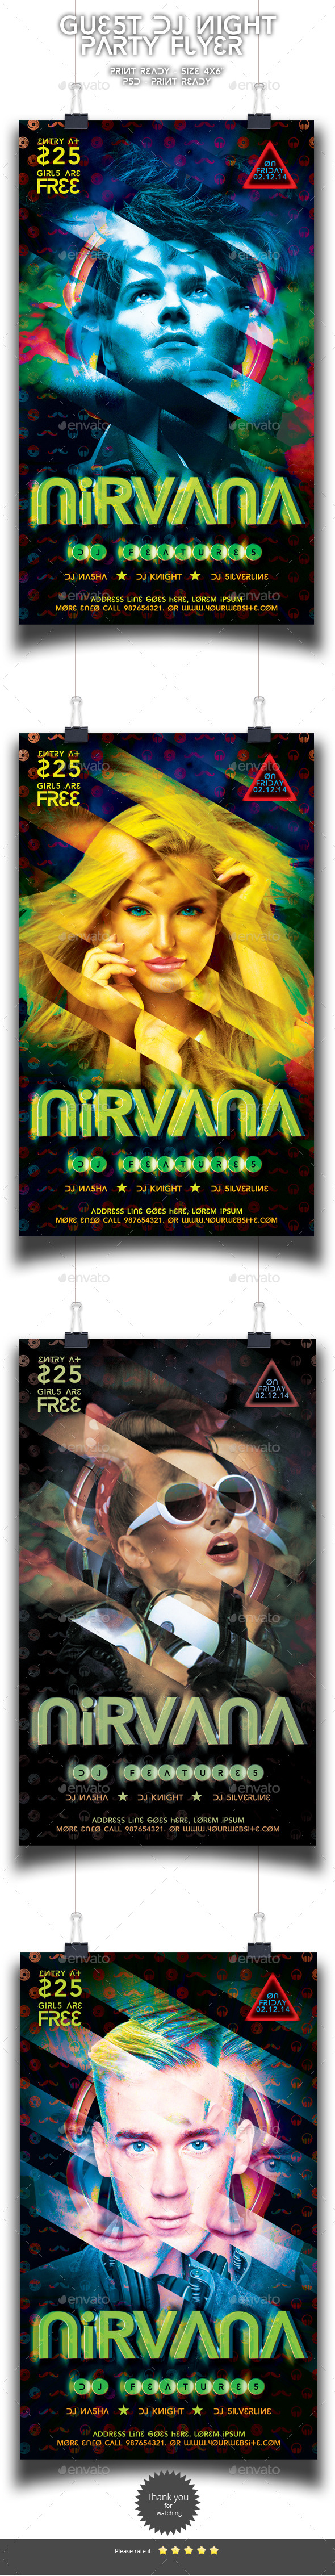 GraphicRiver Guest Dj Party Flyer 9136590